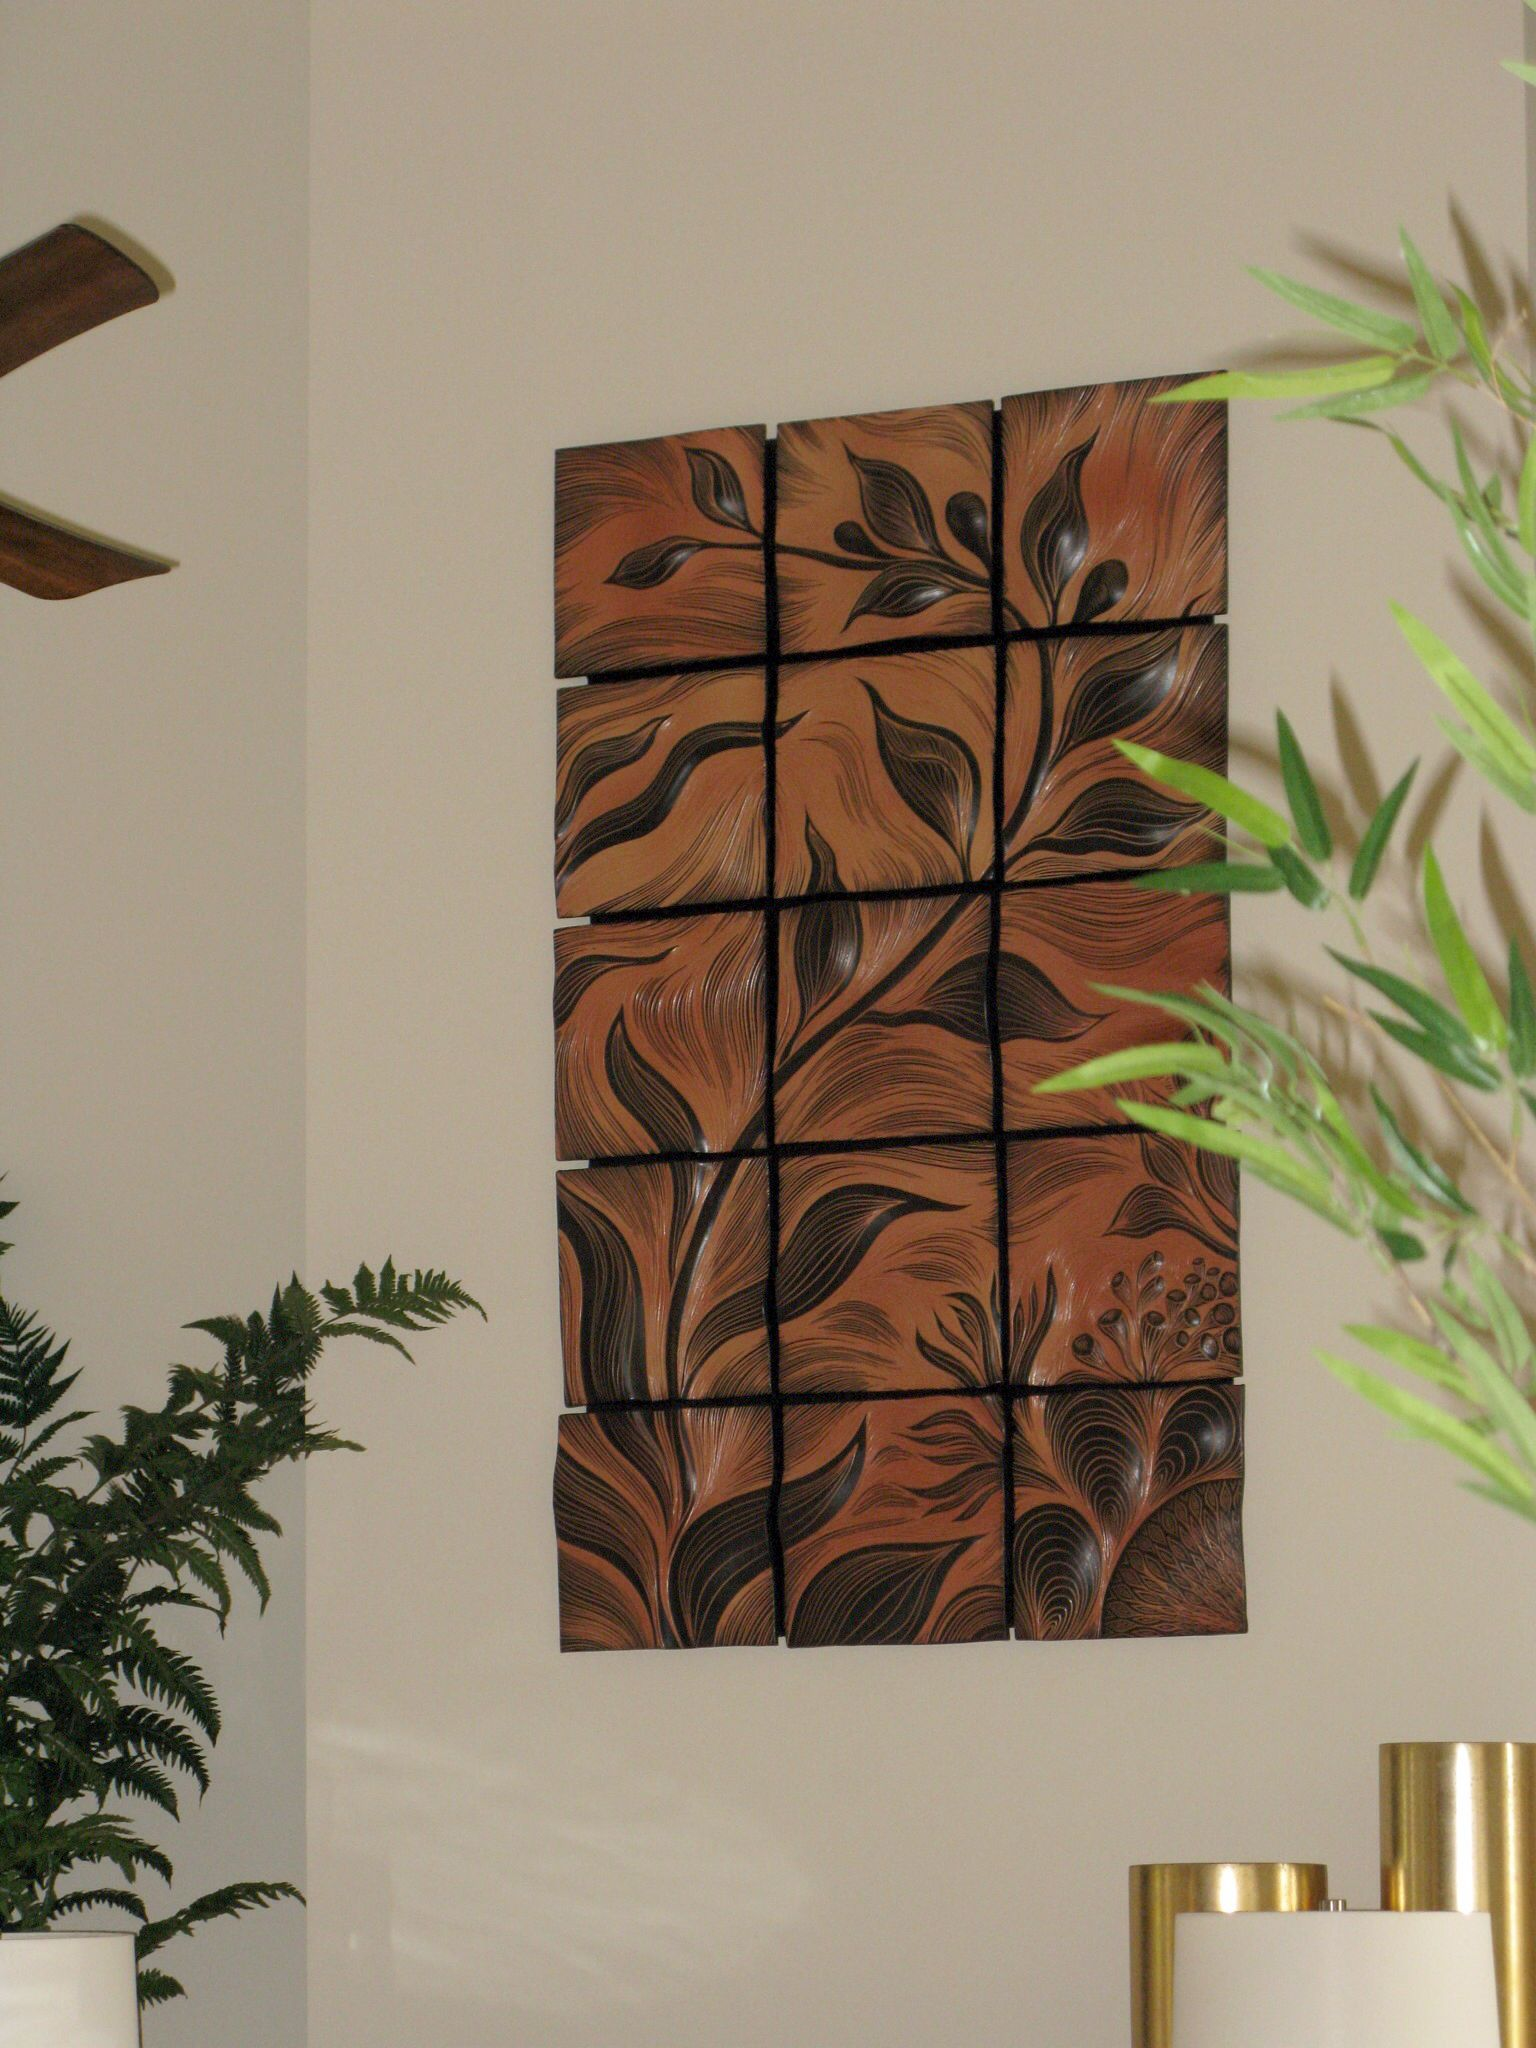 Natalie Blake Studios Artwork Brings Nature Elements Into Your Home Custom Ceramic Wall Art Tile